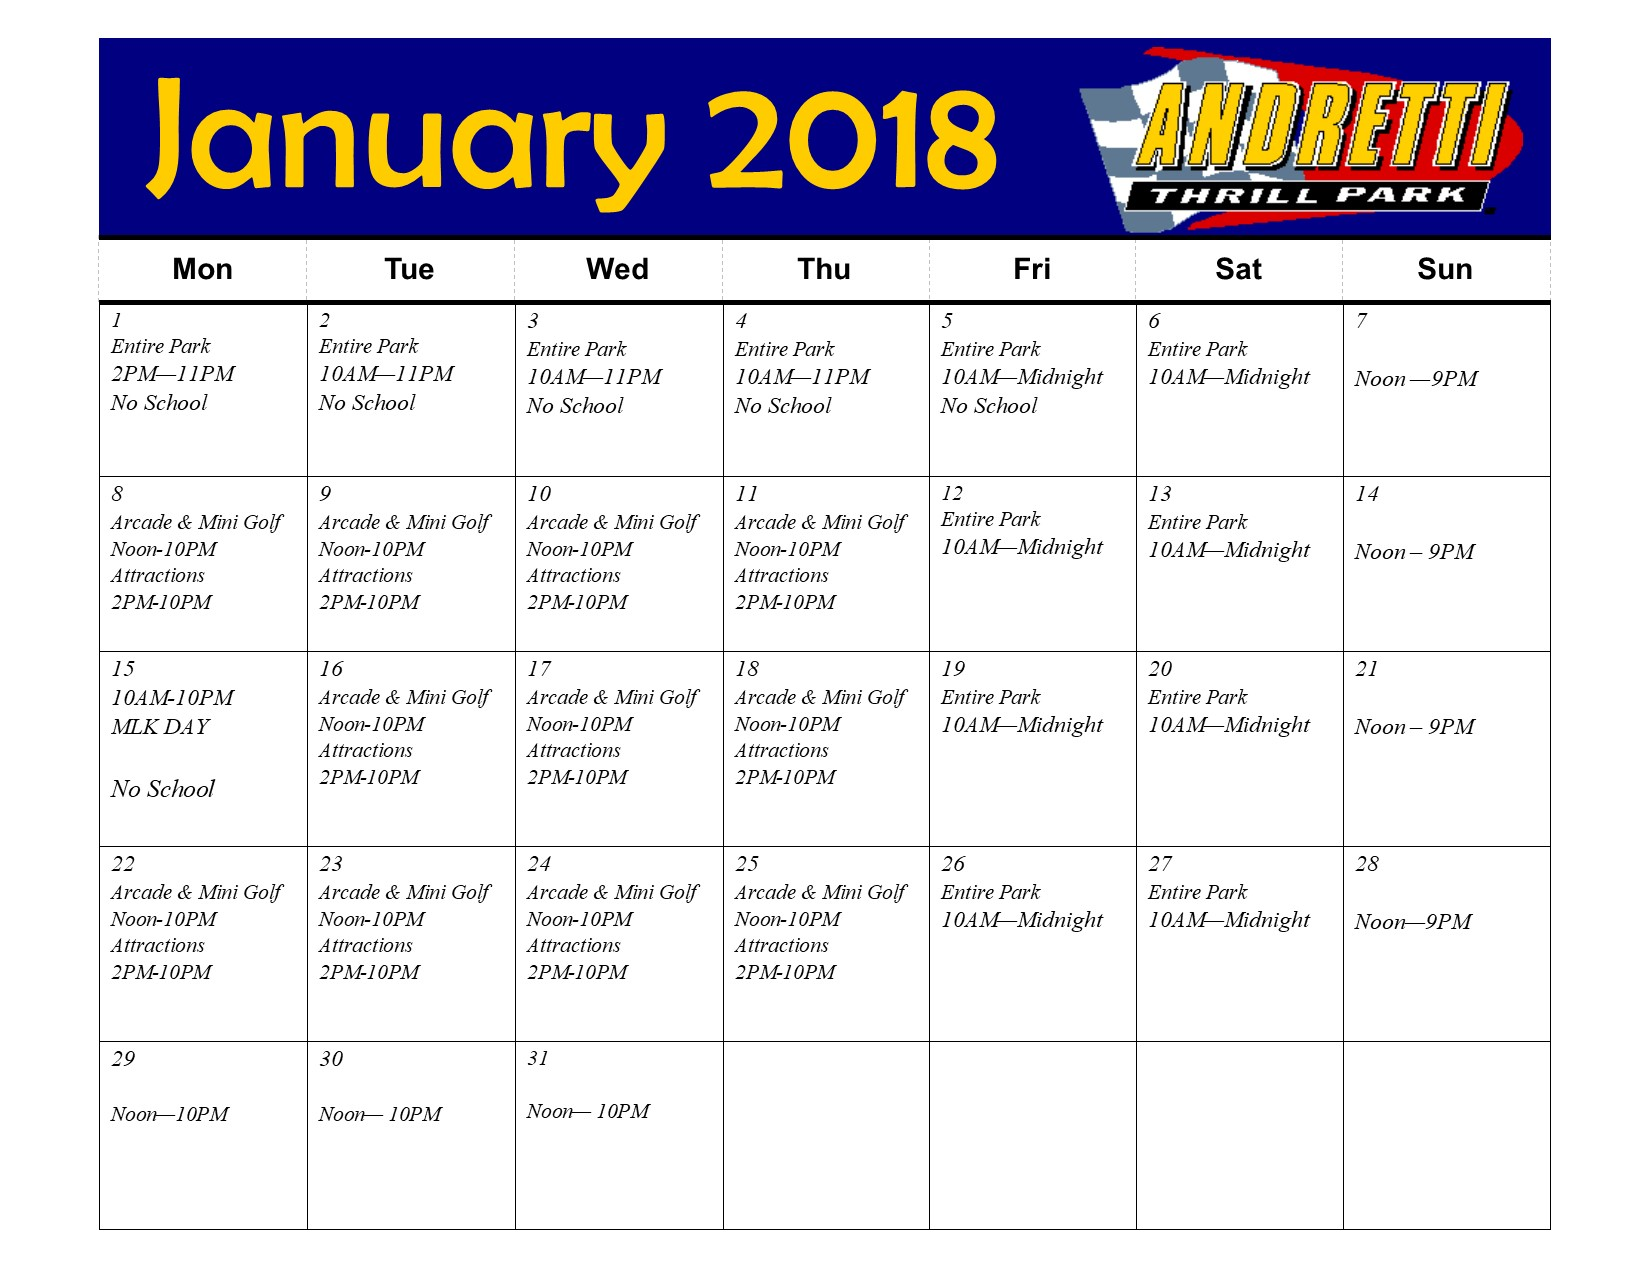 Andretti Hours Park Hours January